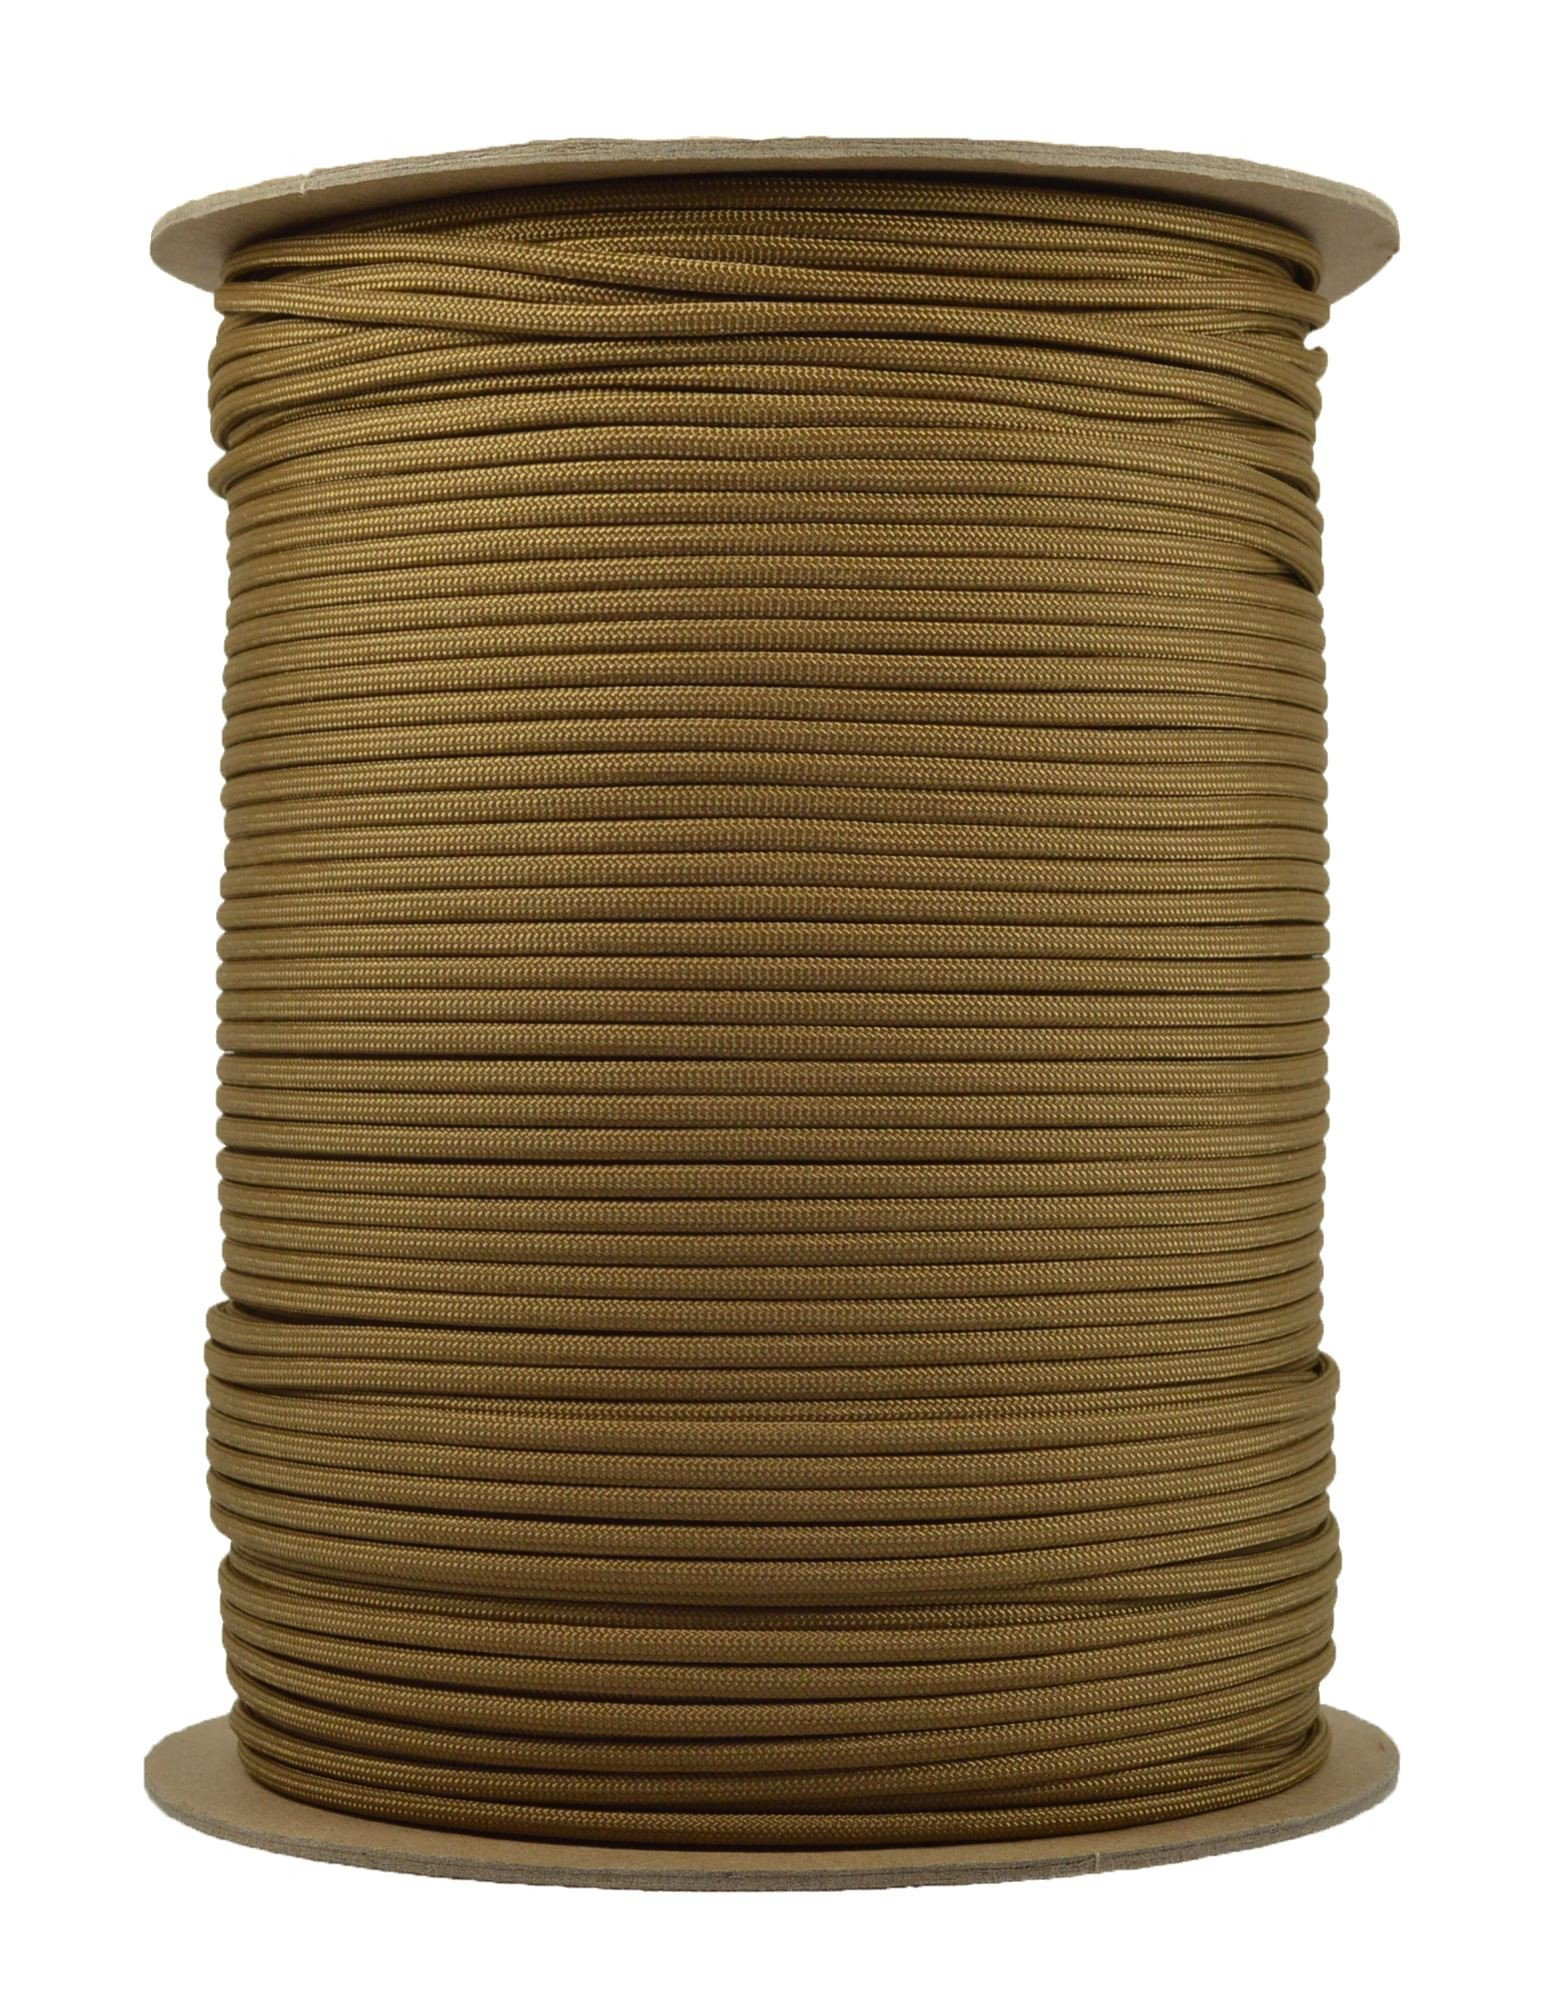 BoredParacord Brand Paracord (1000 ft. Spool) - Coyote Brown